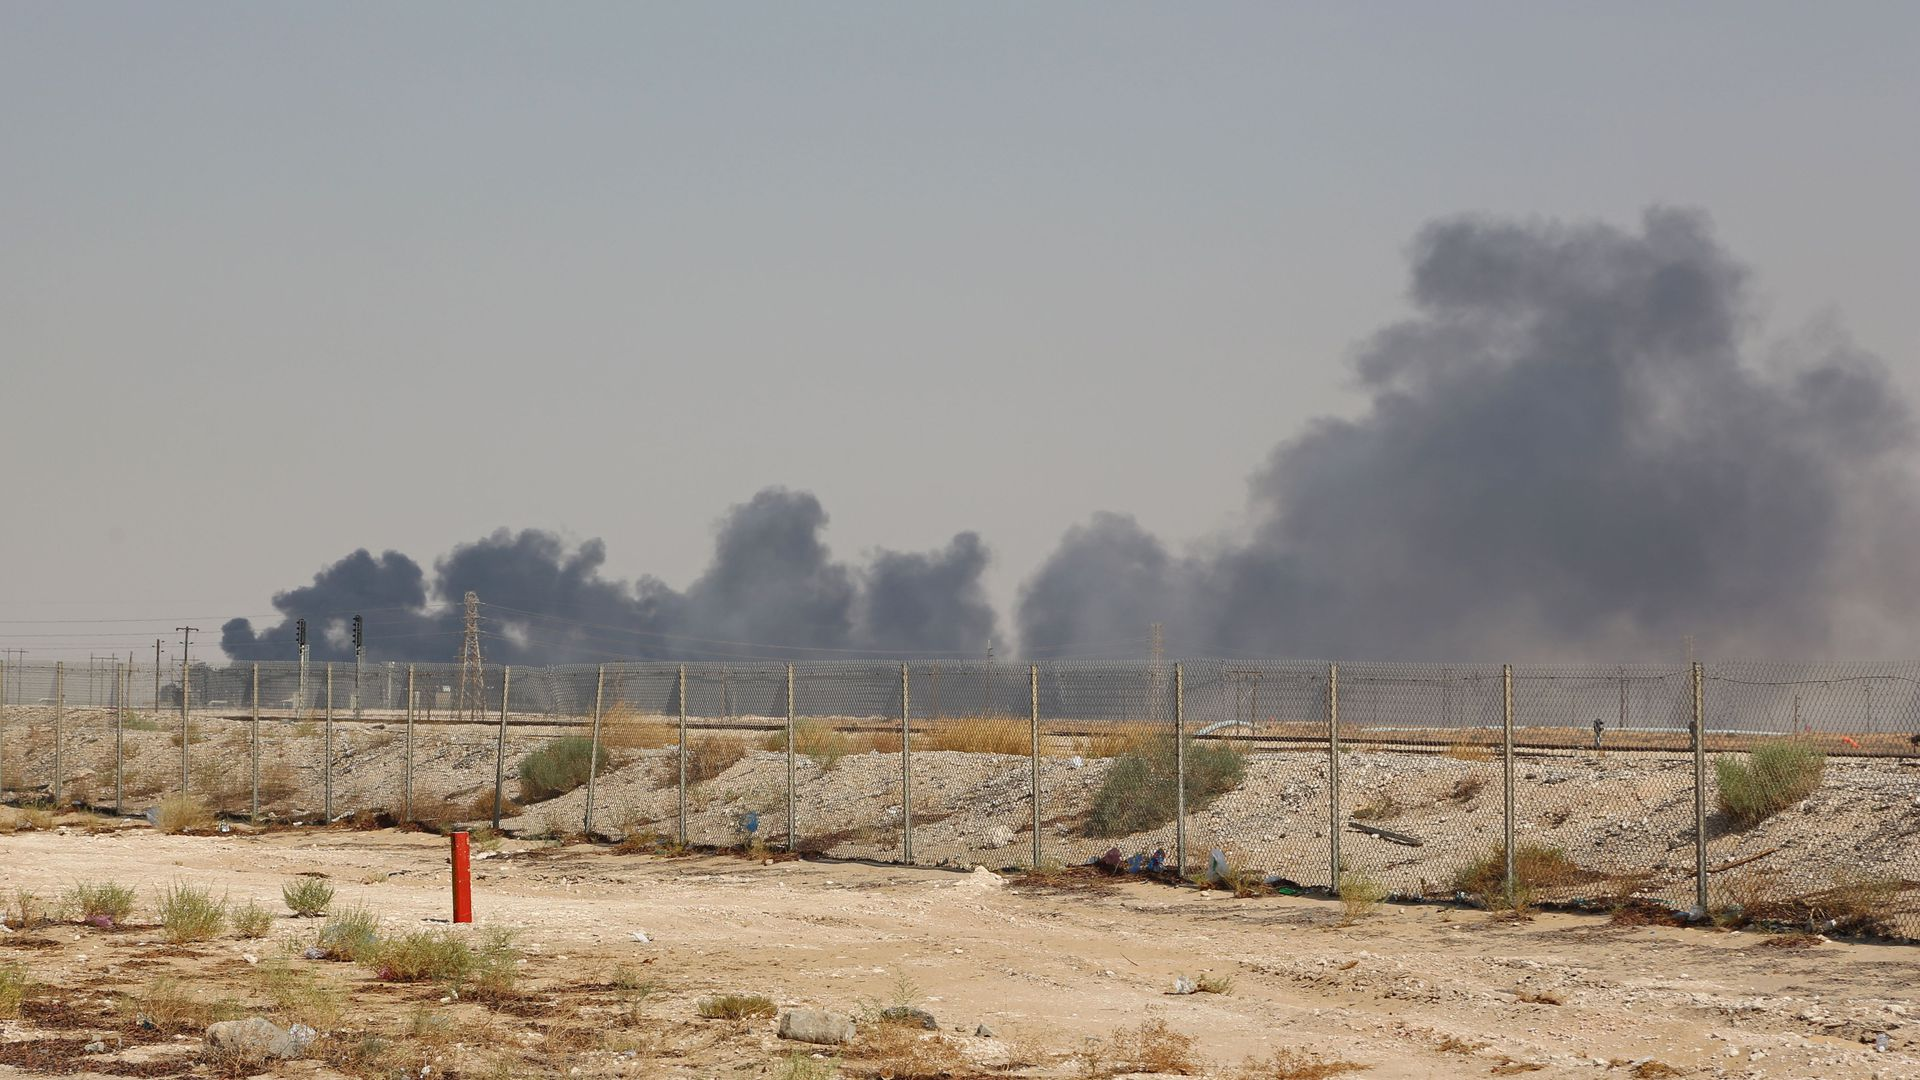 Smoke billows from an Aramco oil facility in Abqaiq after a drone attack in Saudi Arabia